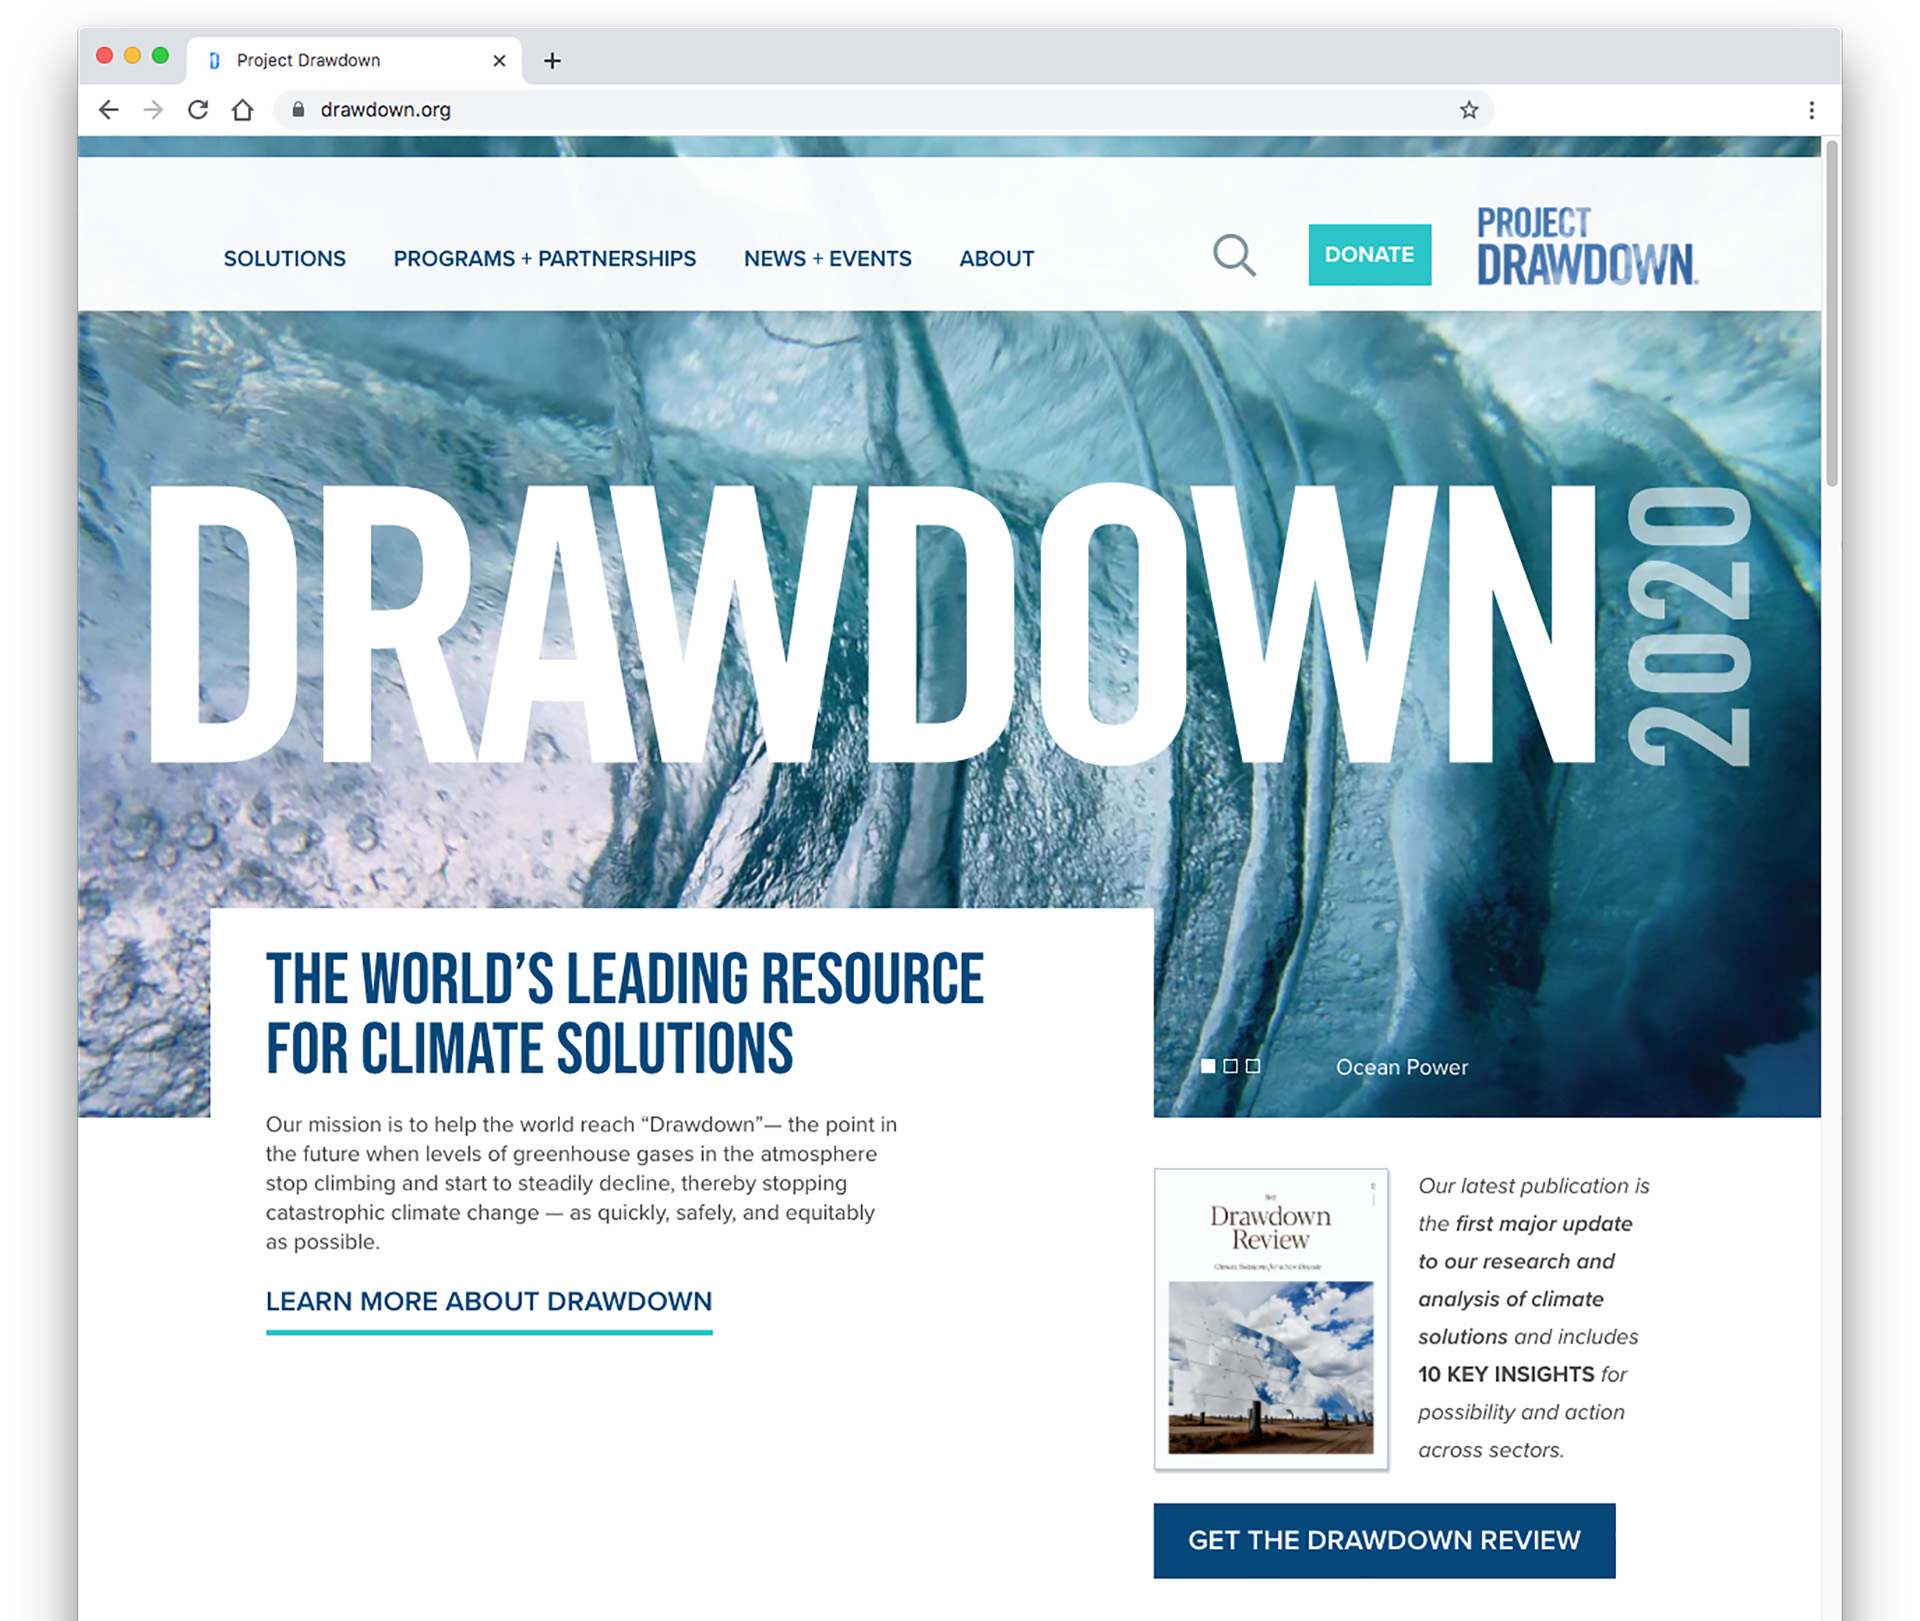 Screenshot of the drawdown.org website home page